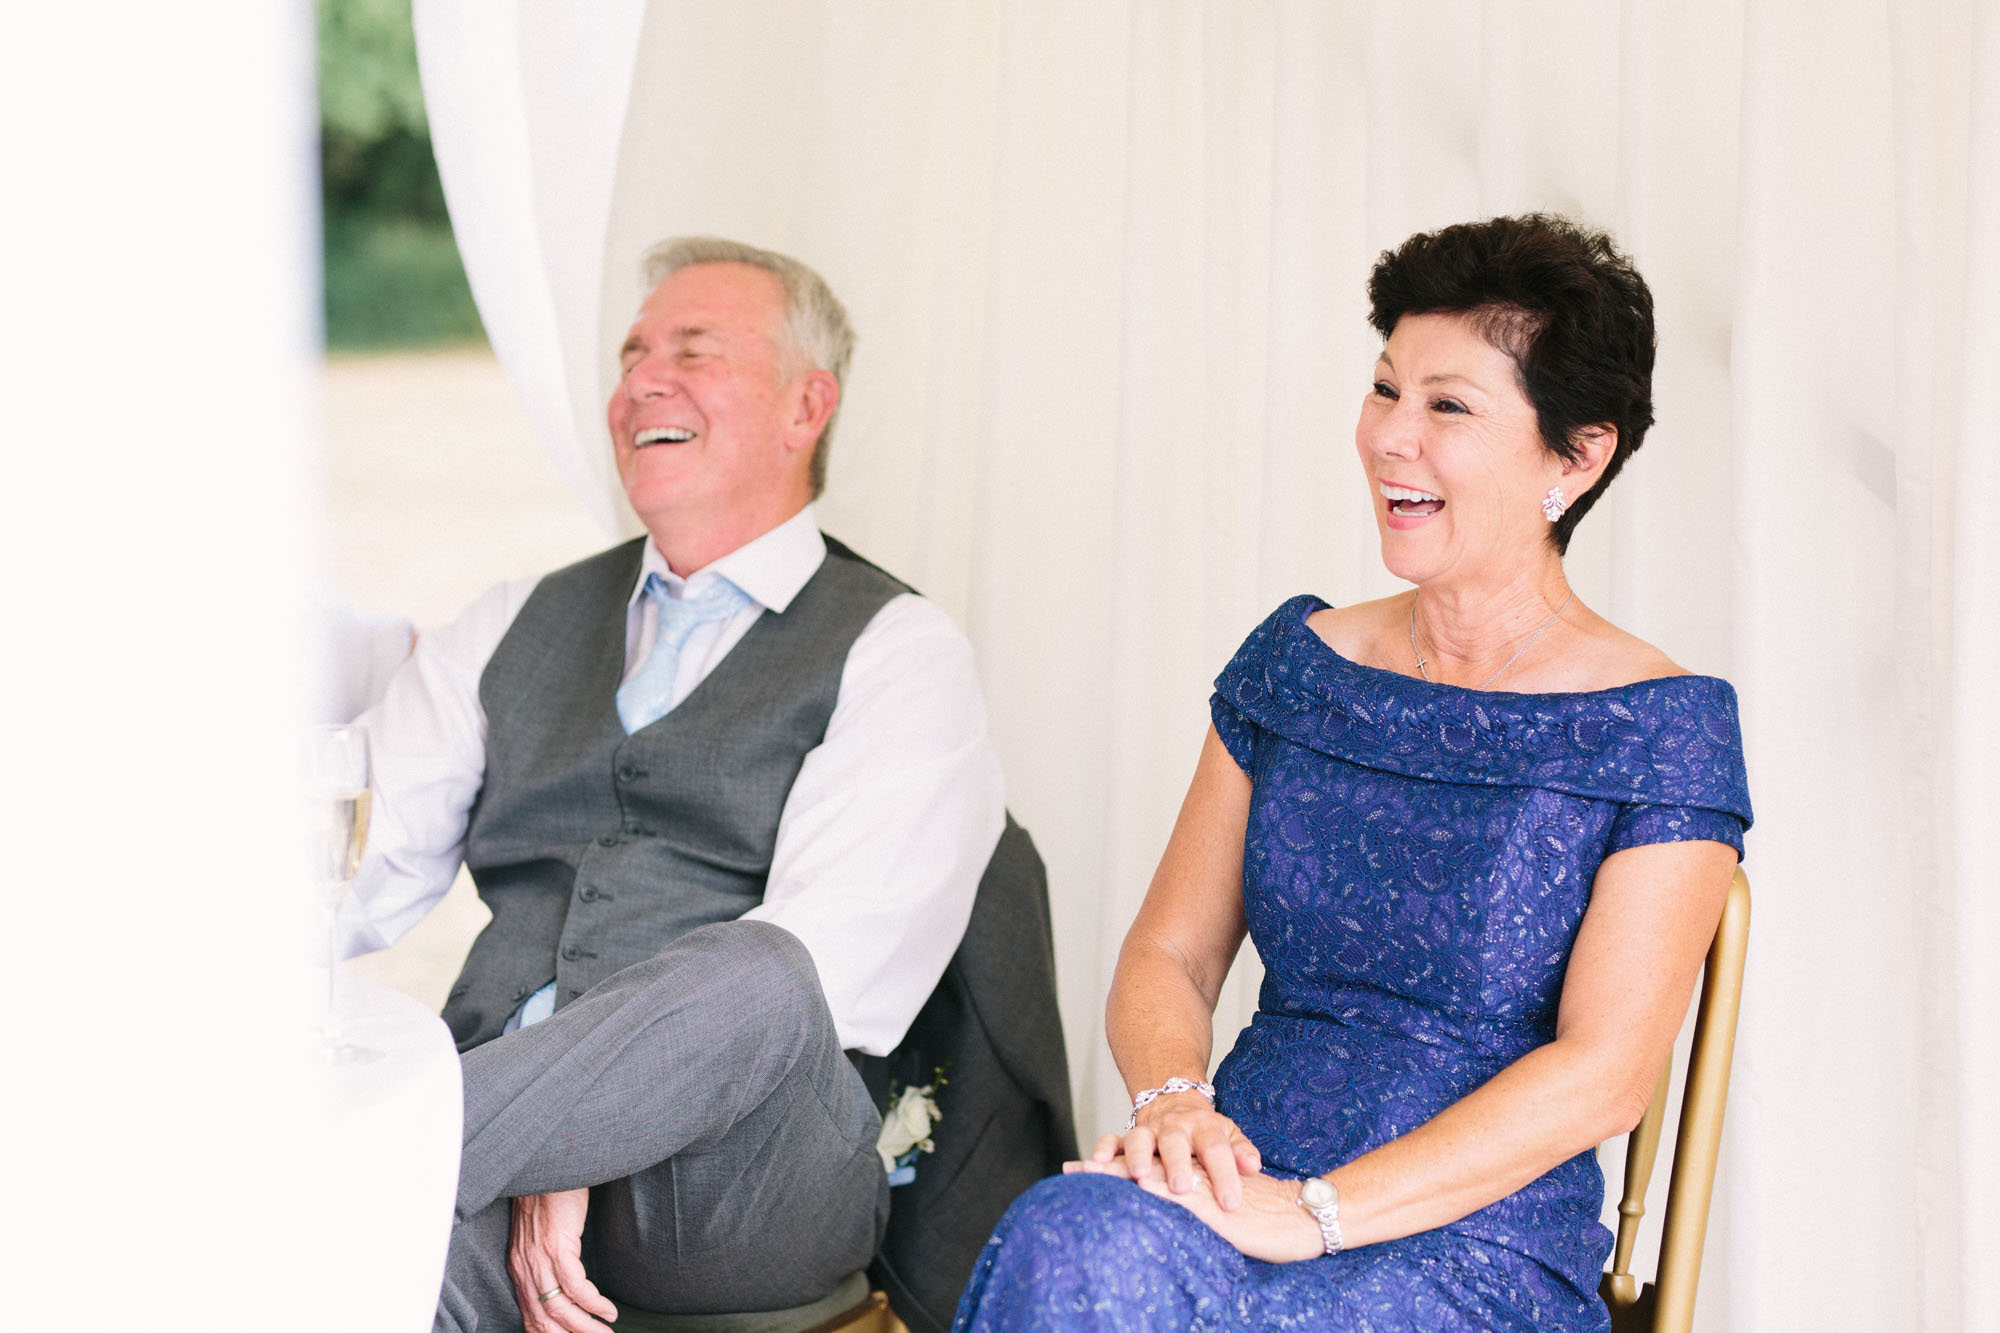 Father of the bride laughing during groom's speech